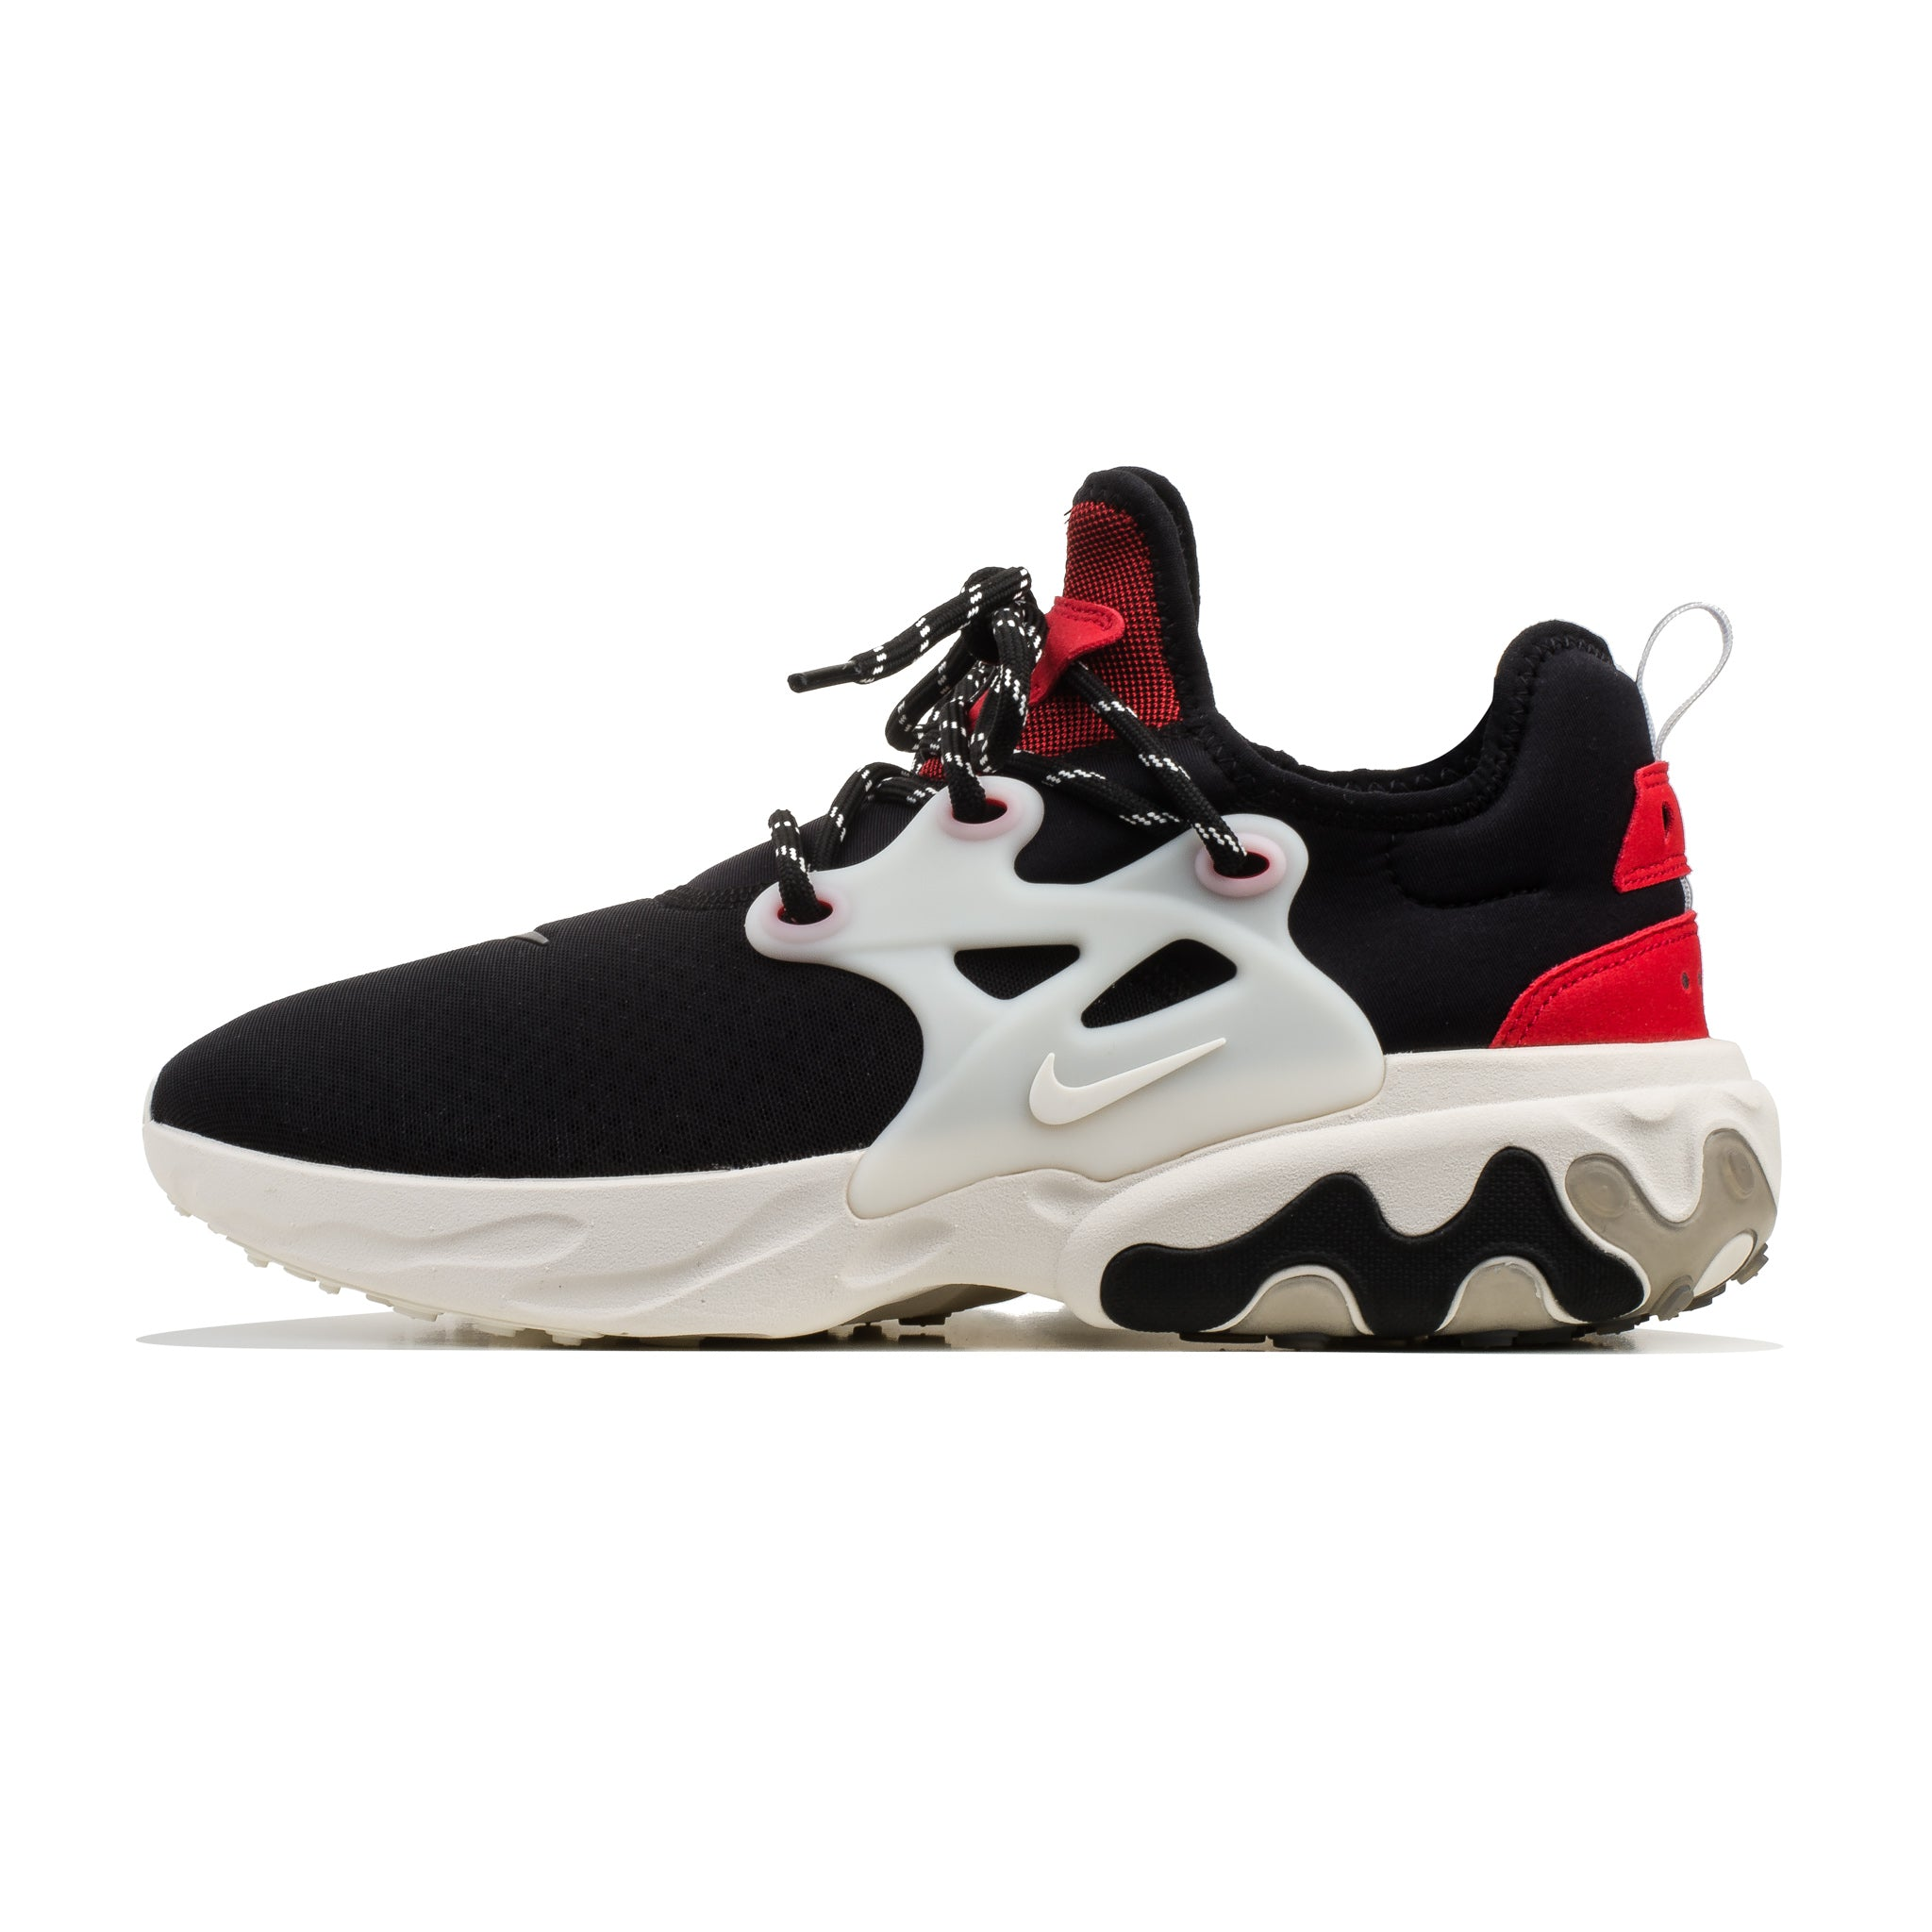 2691efd306775 Nike React Presto AV2605-002 Black/Phantom-University Red – Capsule ...